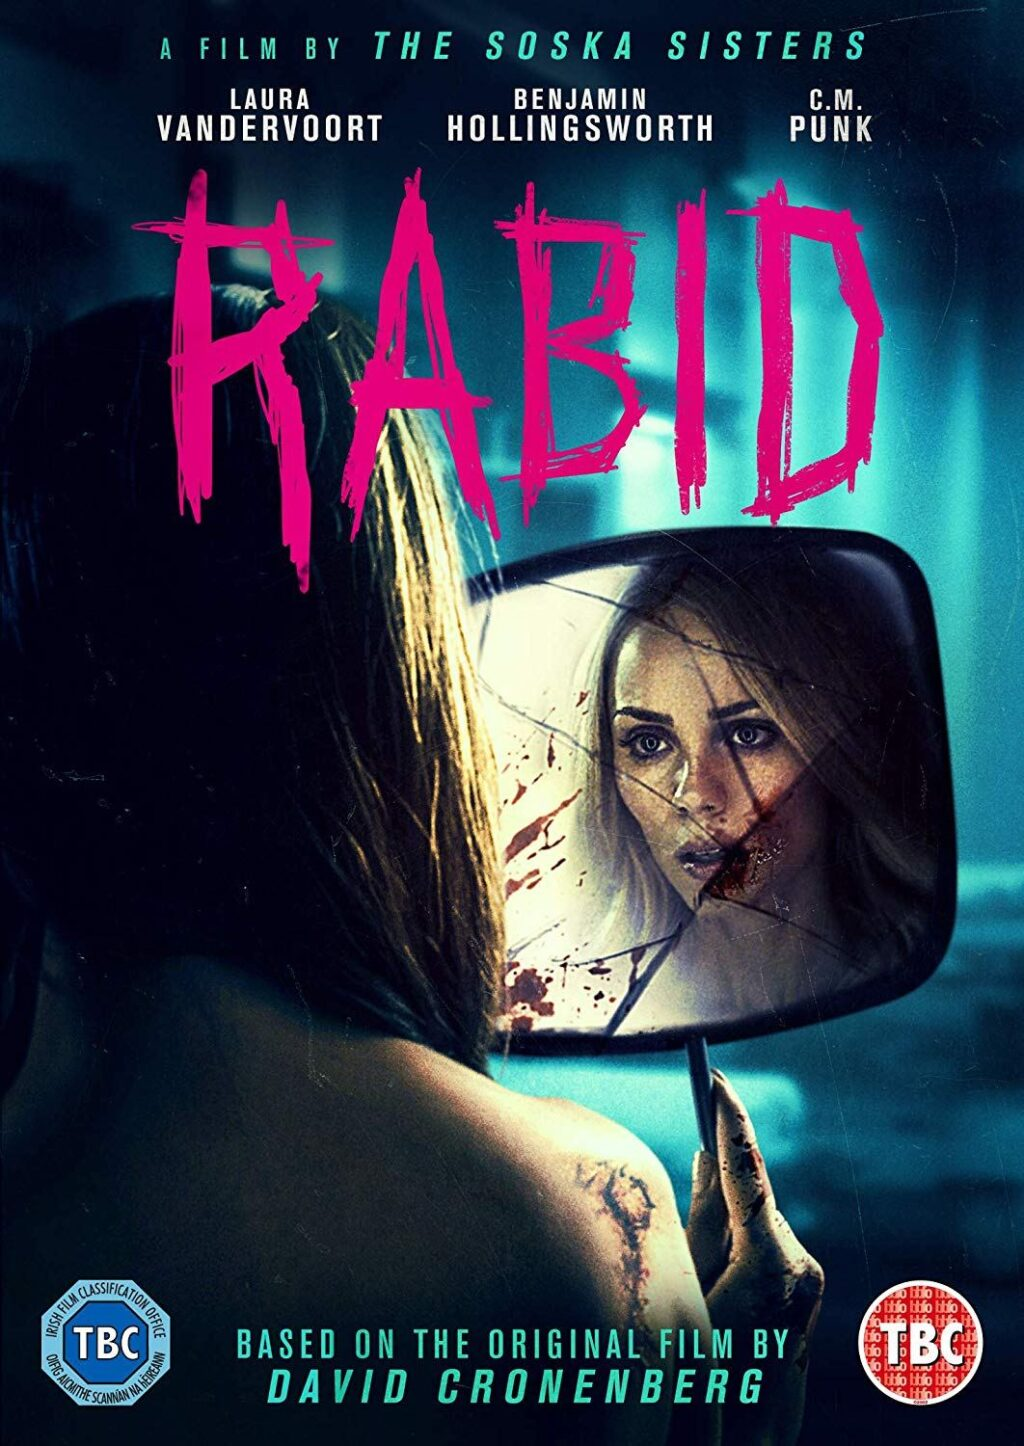 RABID blu ray 1024x1446 - Cover Art & Release Date Announced for UK Blu-ray/DVD Release of Soska Sisters RABID Remake